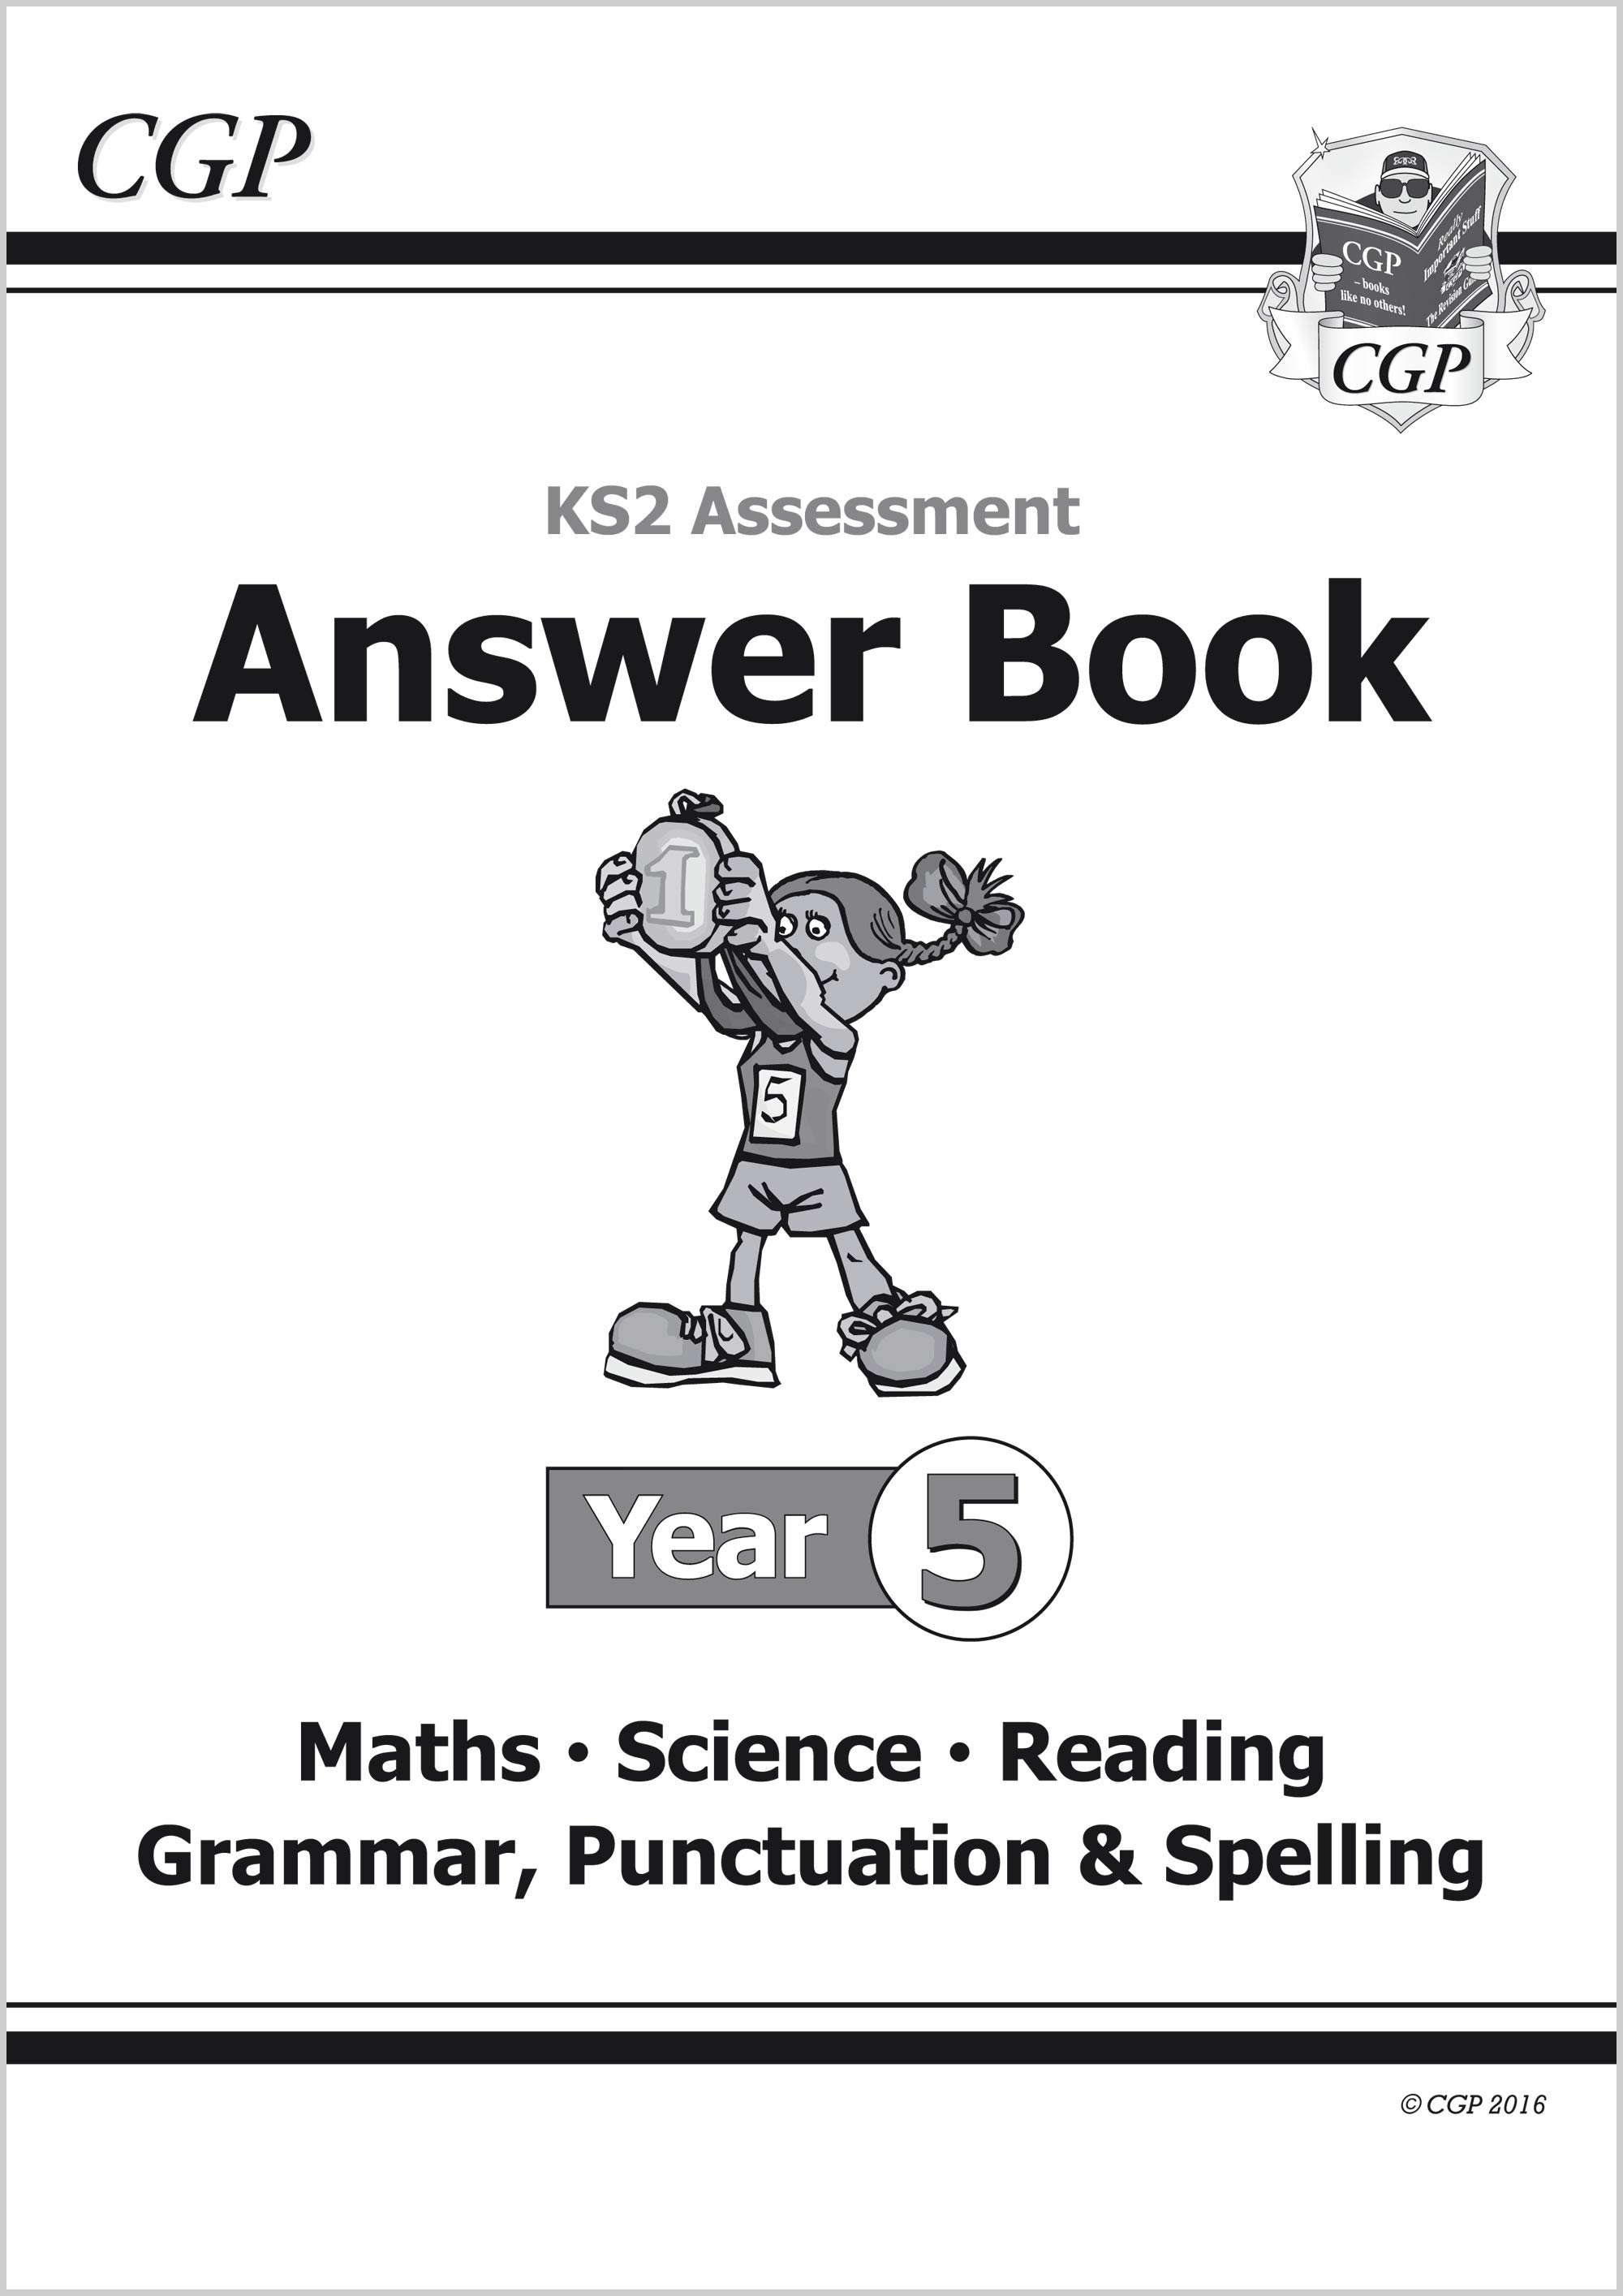 EMS5A21 - KS2 Assessment: Complete Answer Book - Year 5 Tests